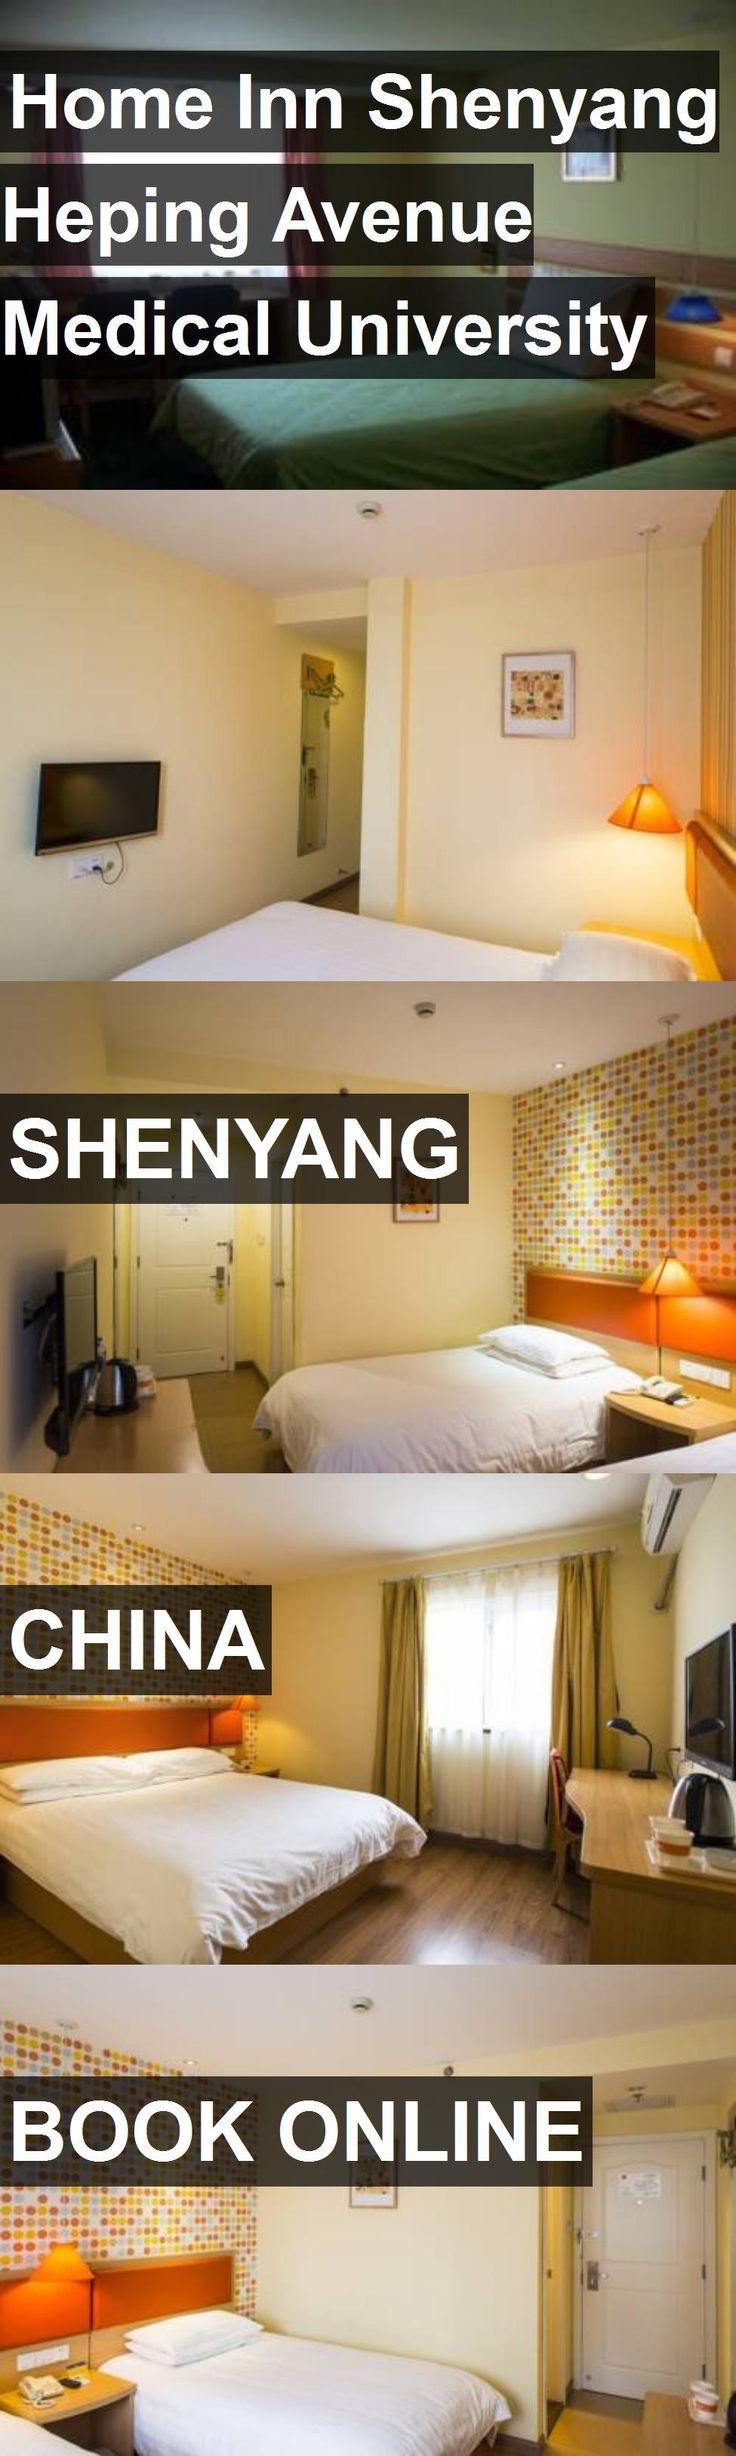 Hotel Home Inn Shenyang Heping Avenue Medical University in Shenyang, China. For more information, photos, reviews and best prices please follow the link. #China #Shenyang #HomeInnShenyangHepingAvenueMedicalUniversity #hotel #travel #vacation